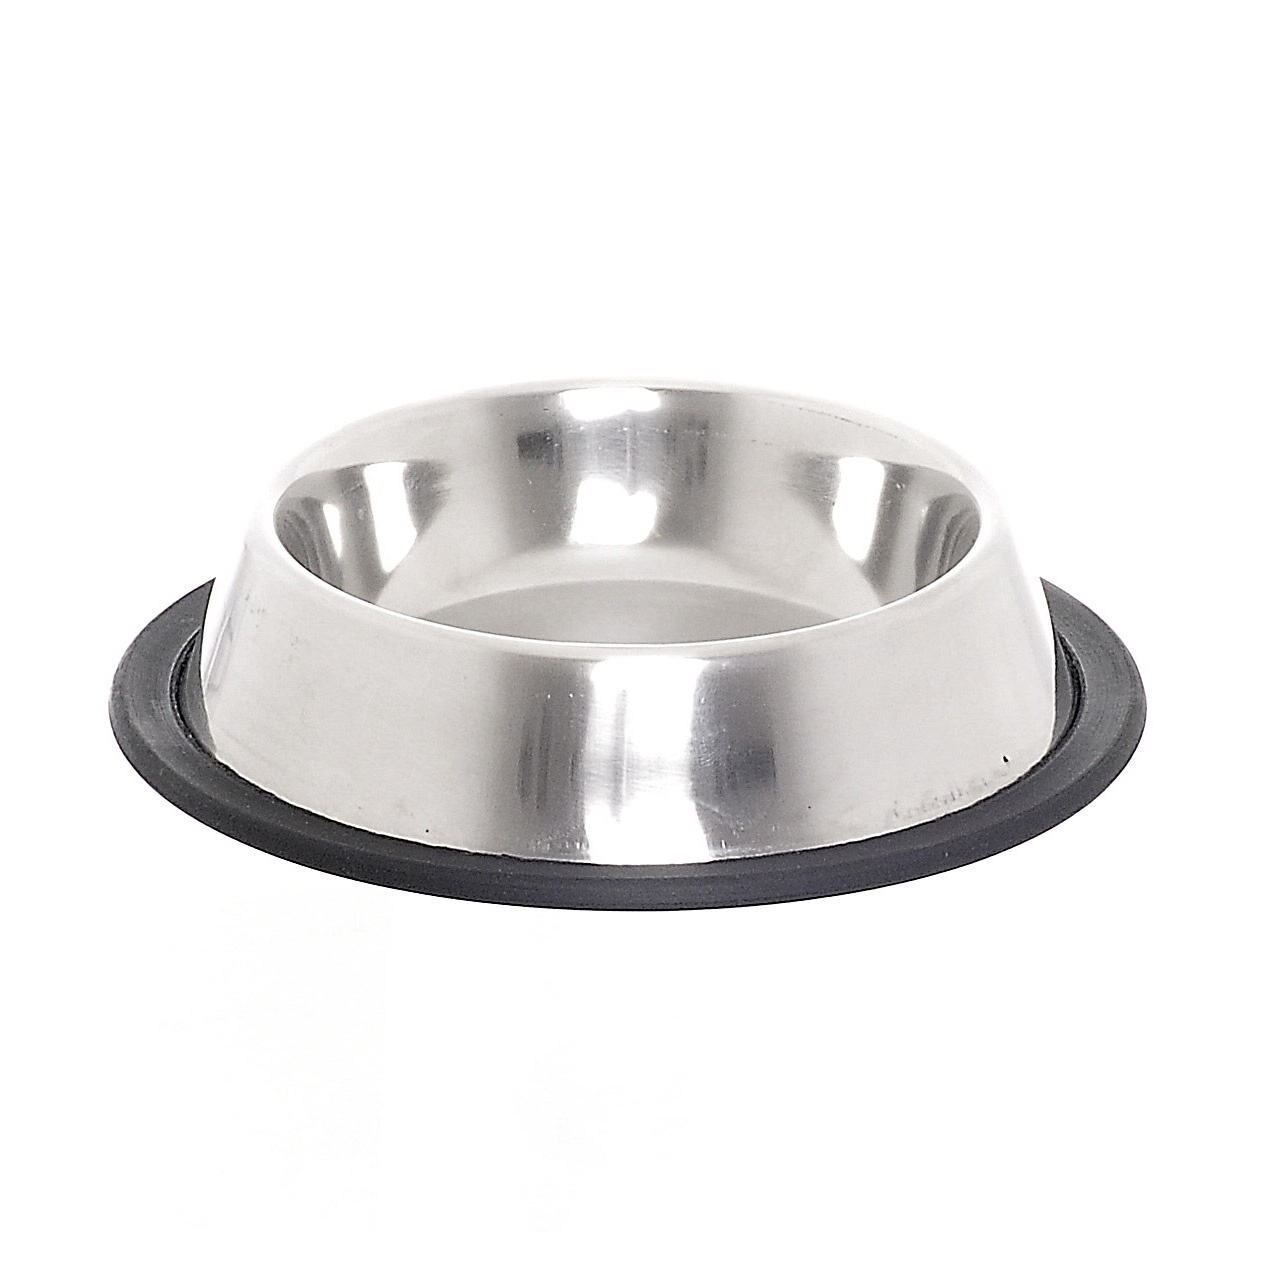 PAPILLON Миска с нескользящим покрытием 25 см, 0,9 л , Anti skid feed bowl